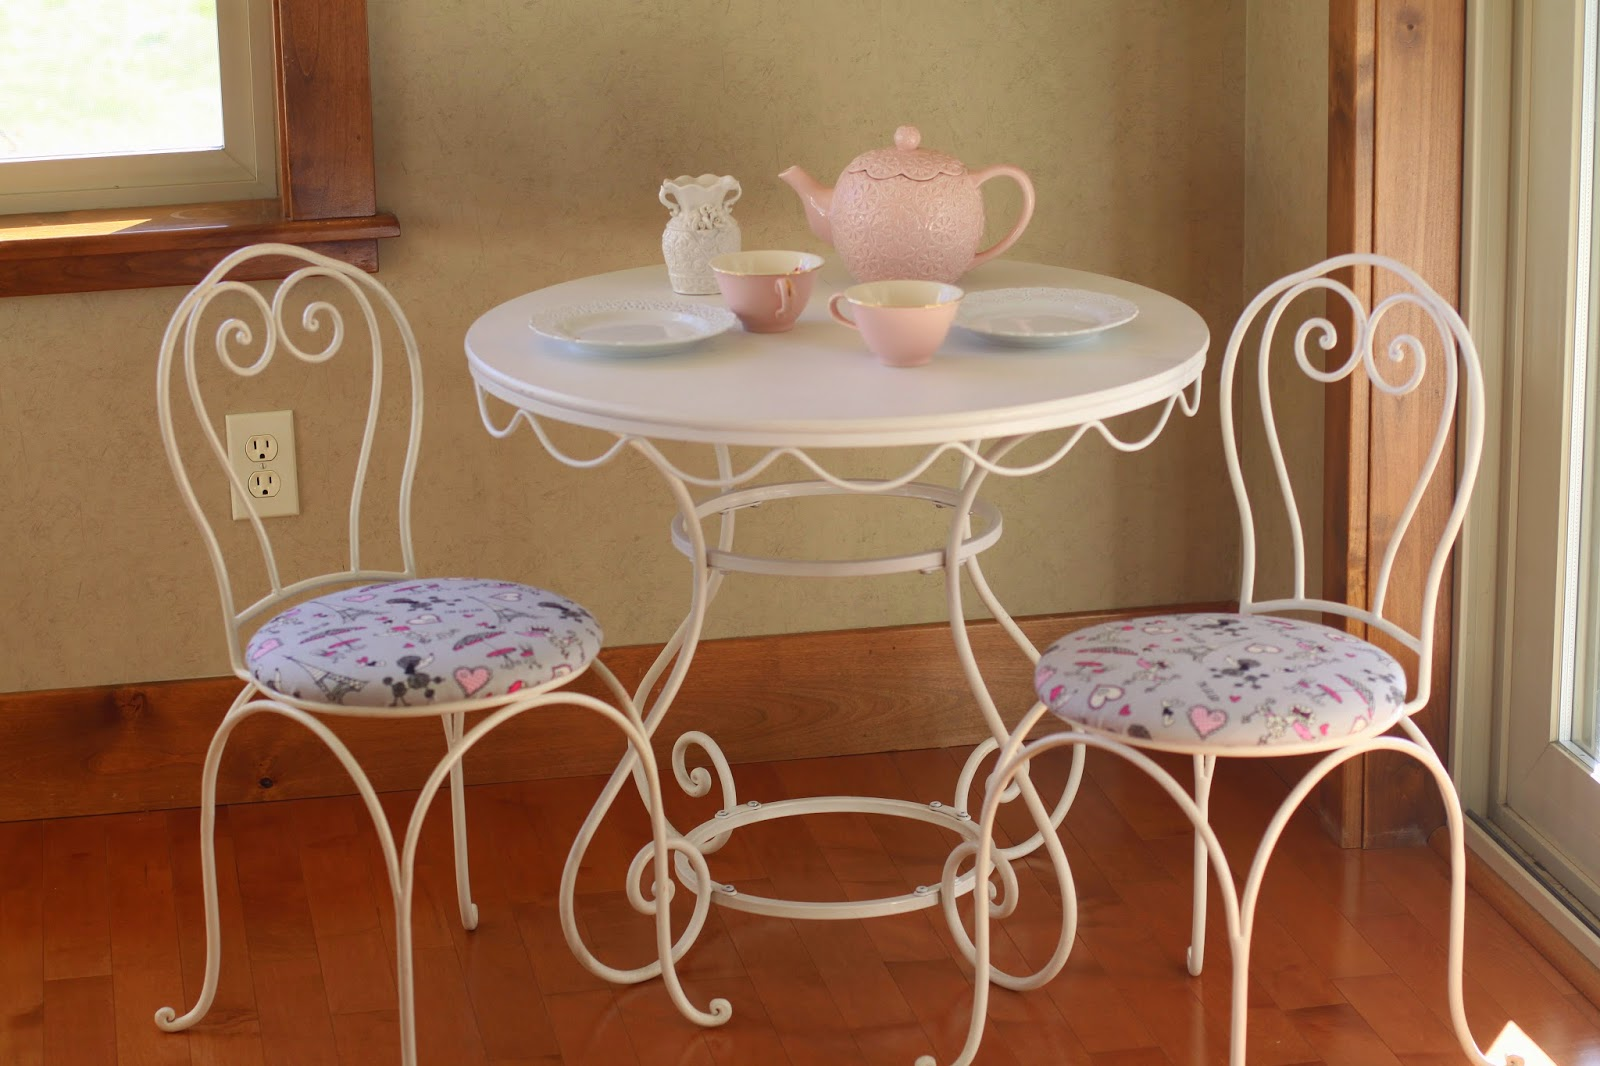 When The Seasons Change I Clean Out Closets. When The Year Changes I Like  To Start With A Clean Slate And Freshen Things Up. The Girlsu0027 Tea Table  Chairs Had ...